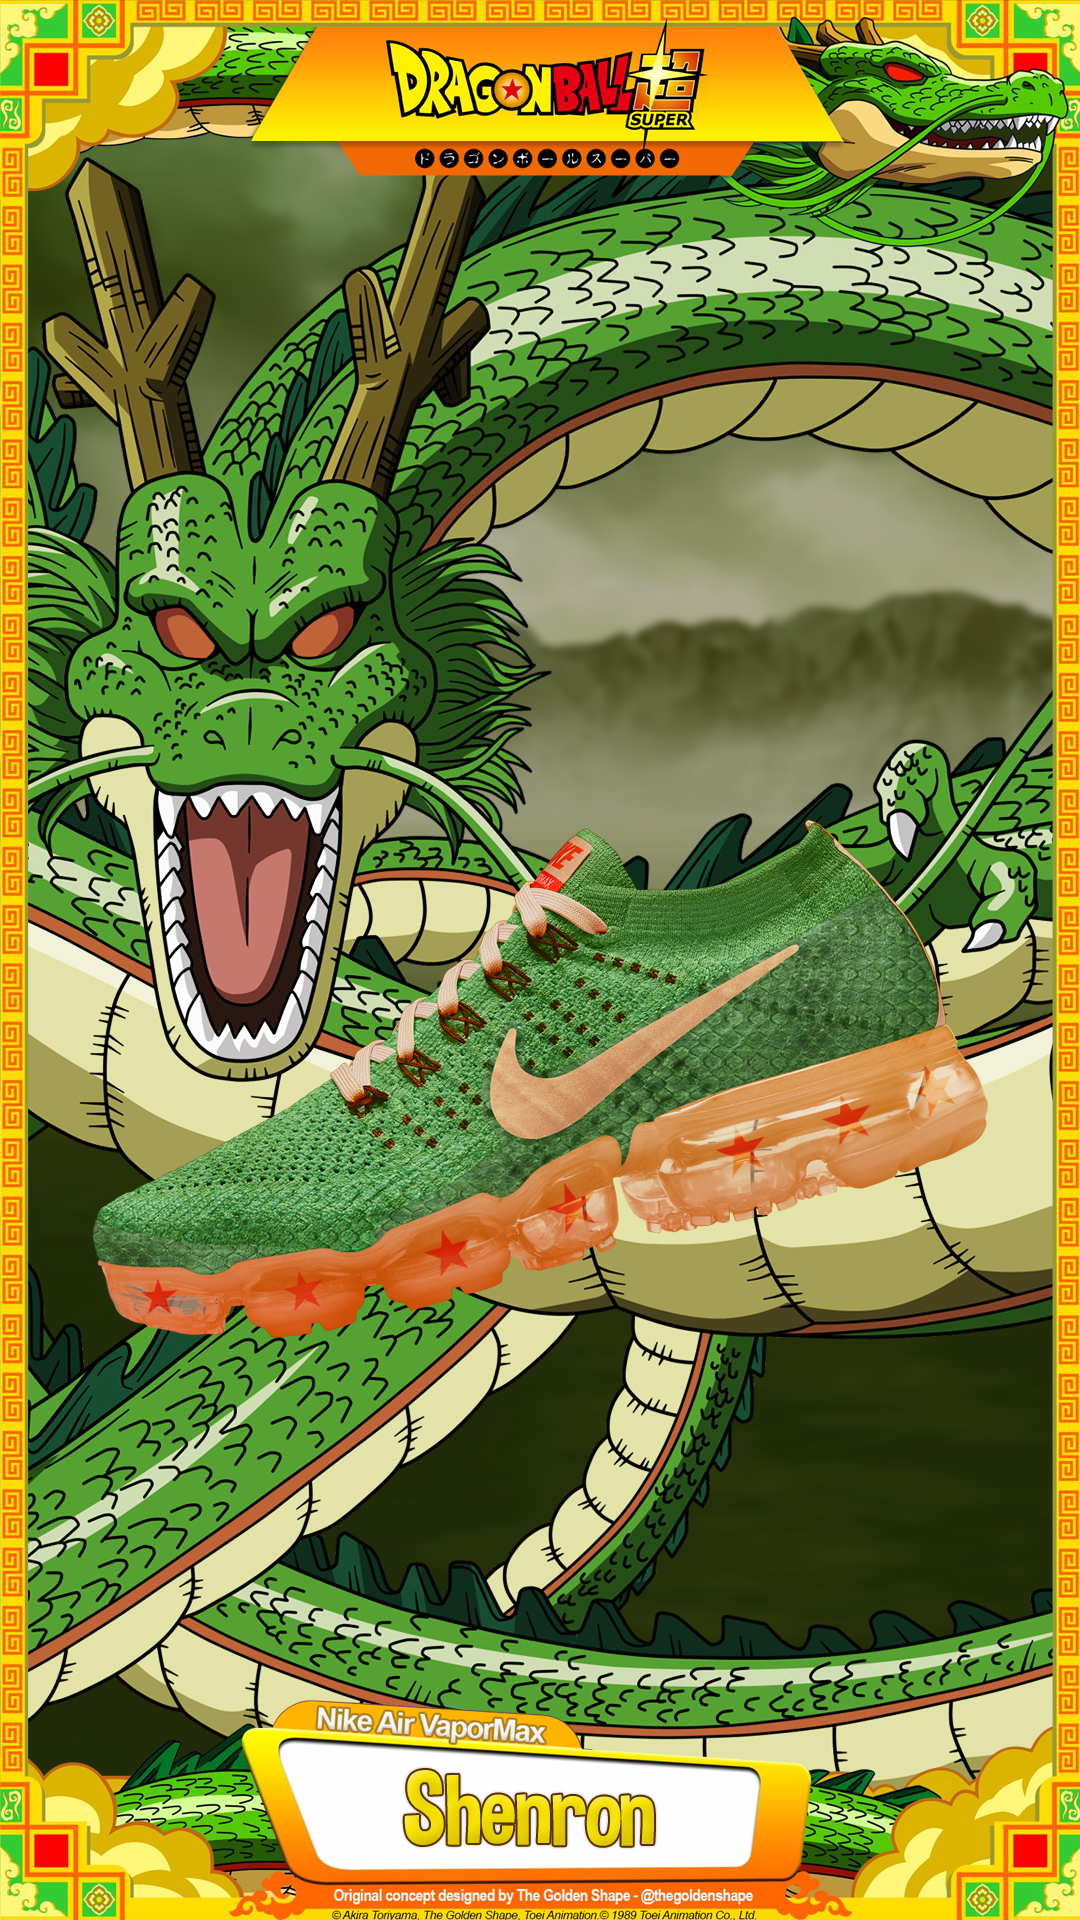 Sneaker Wallpaper Nike Vapormax Shenron Dragon Ball Z Cell Carts